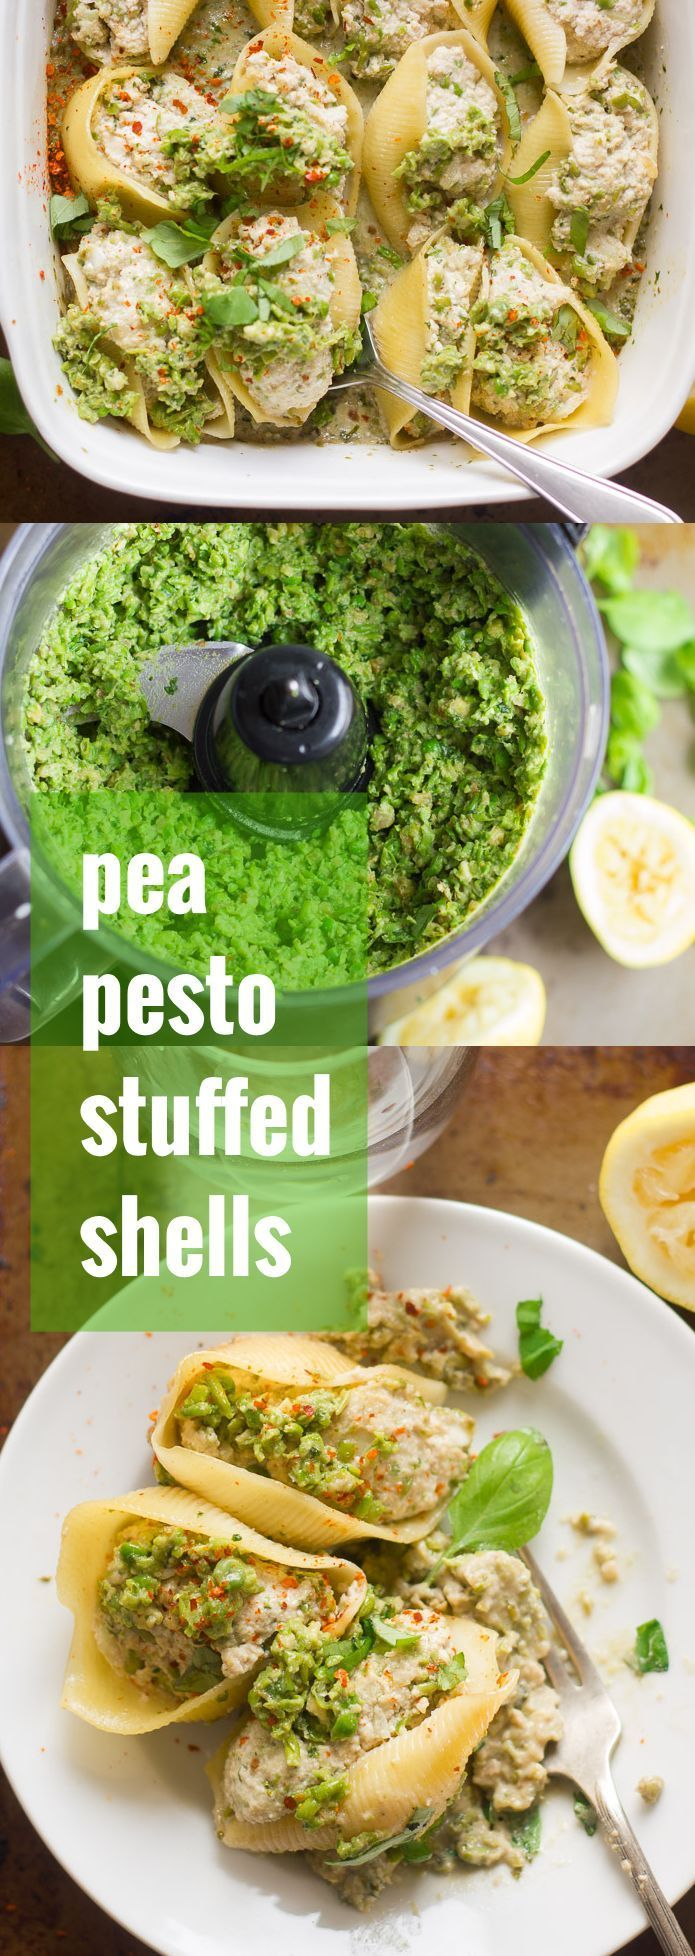 These vegan stuffed shells are filled with a mix of dairy-free cashew tofu ricotta and garlicky basil pea pesto, and baked up in a creamy sauce to bubbly perfection.